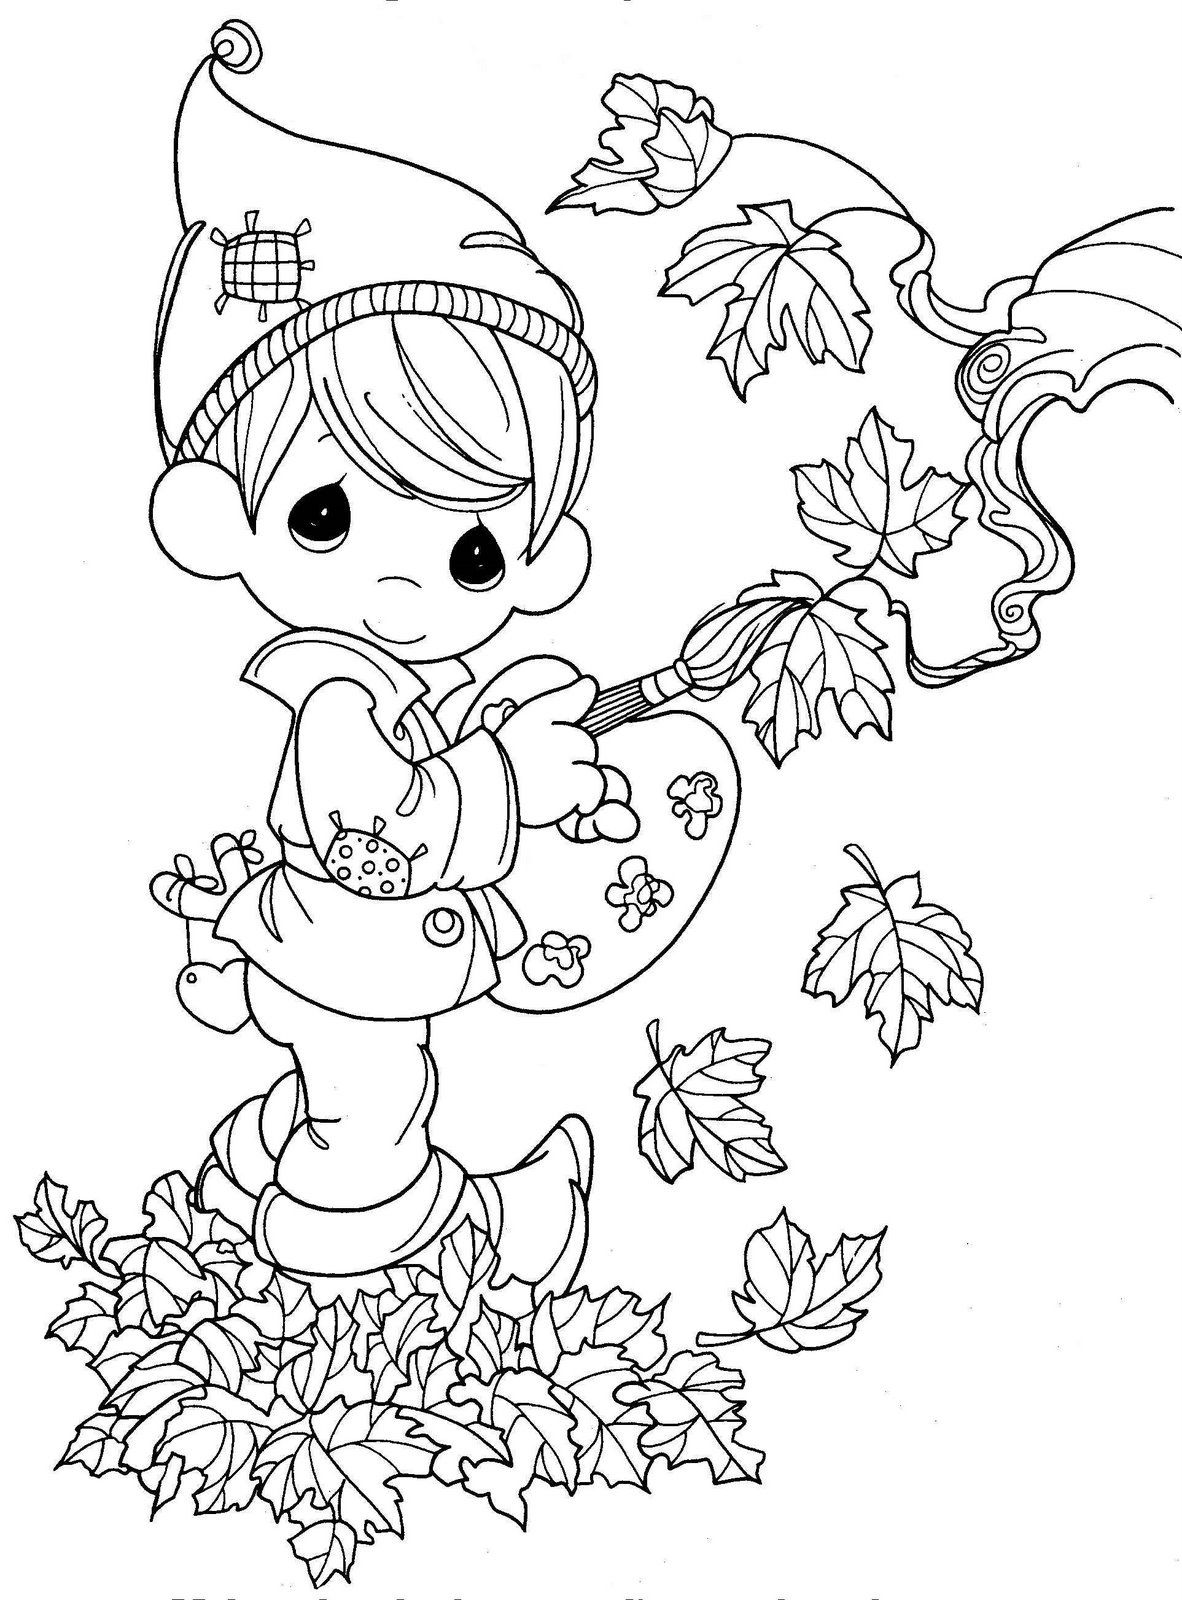 Fall Color Pages Printable | Activity Shelter | Coloring Pages for ...